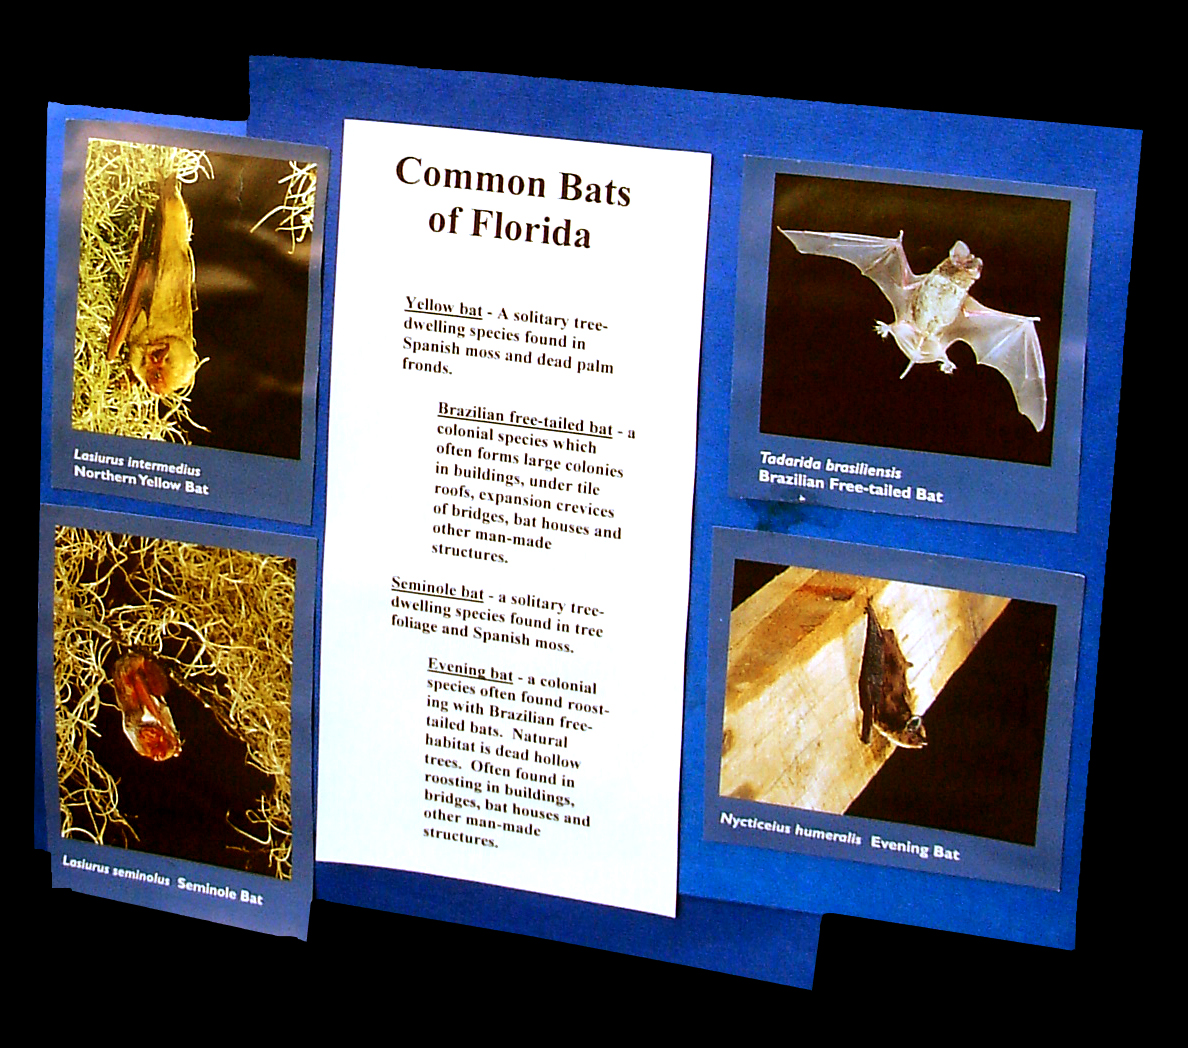 Common bats in Florida